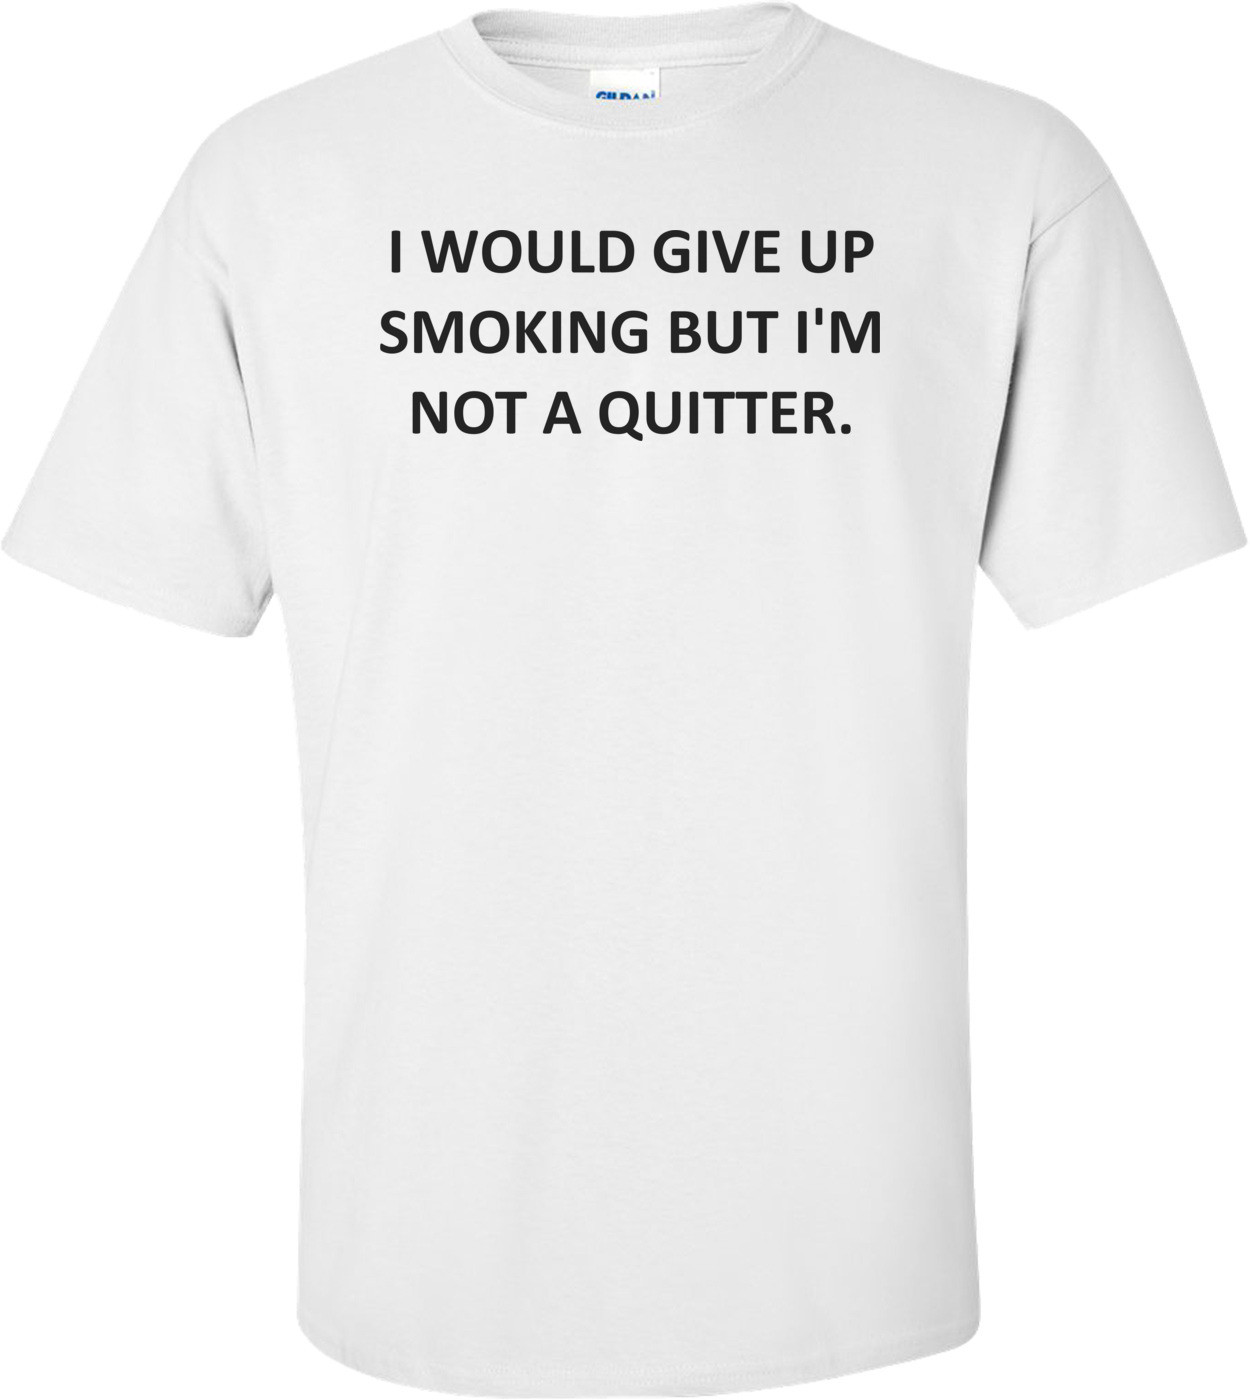 I WOULD GIVE UP SMOKING BUT I'M NOT A QUITTER. Shirt